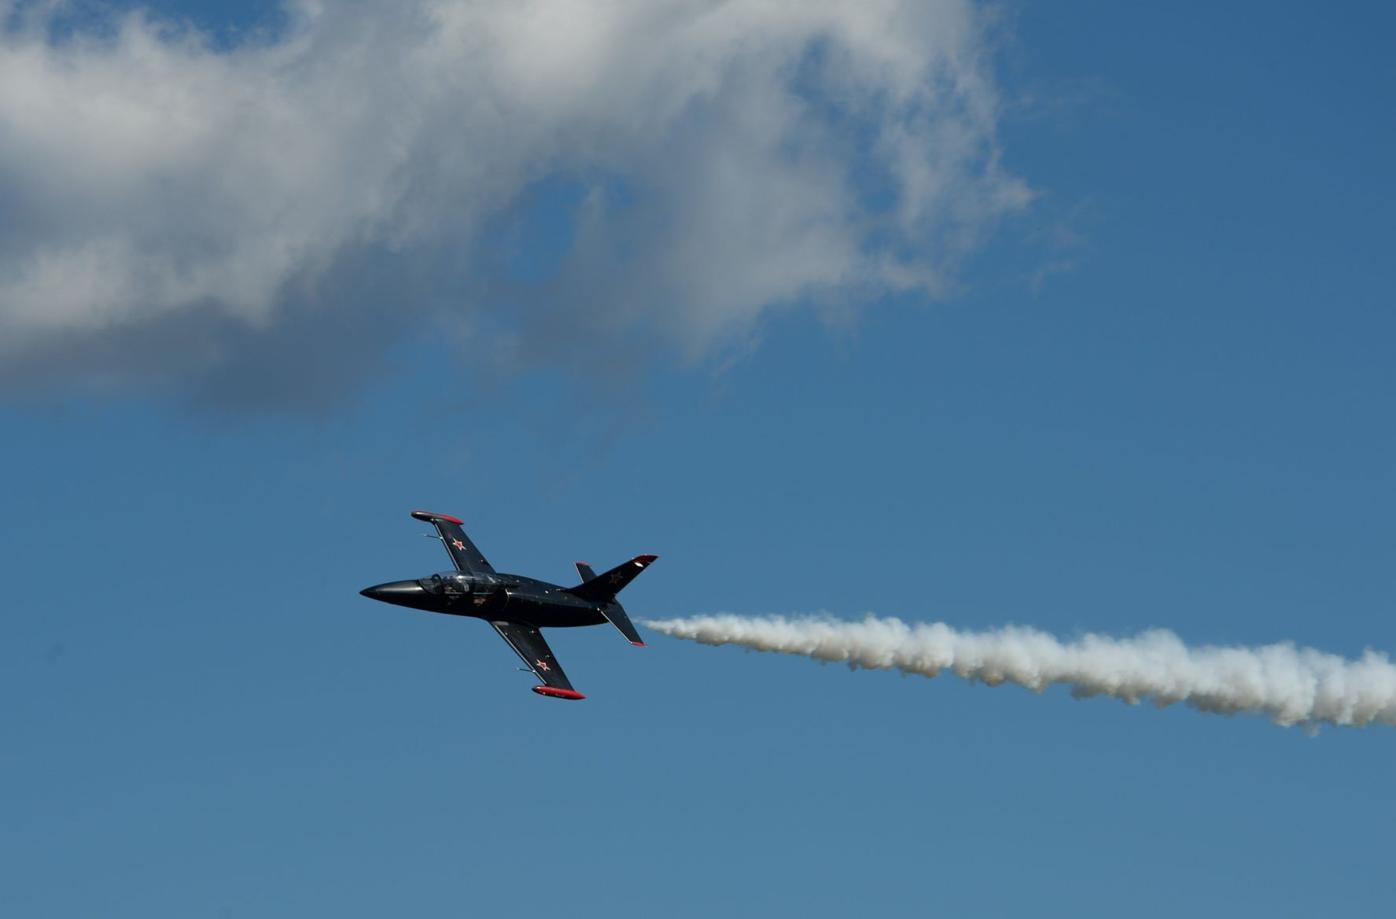 Test pilots honor first responders at airport anniversary celebration